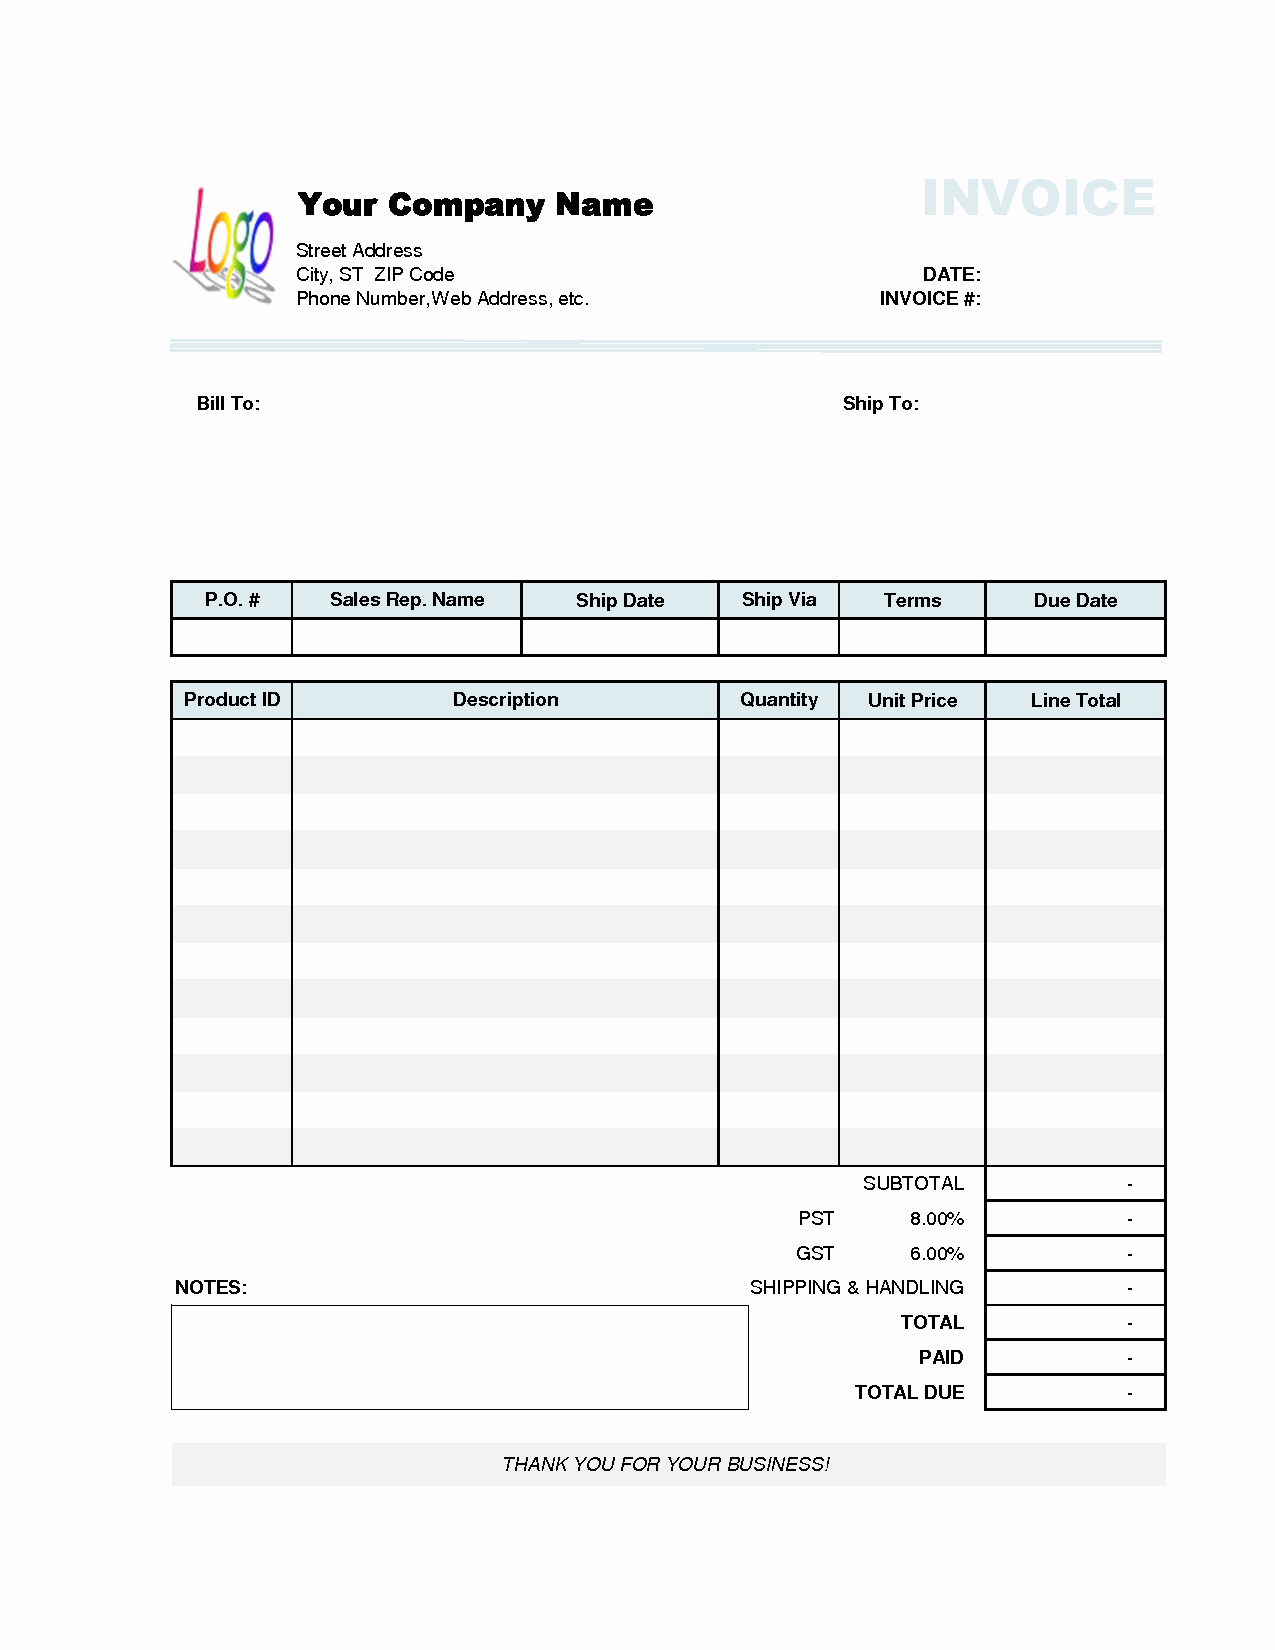 Free Invoice Template for Word Inspirational Invoice Template Excel 2010